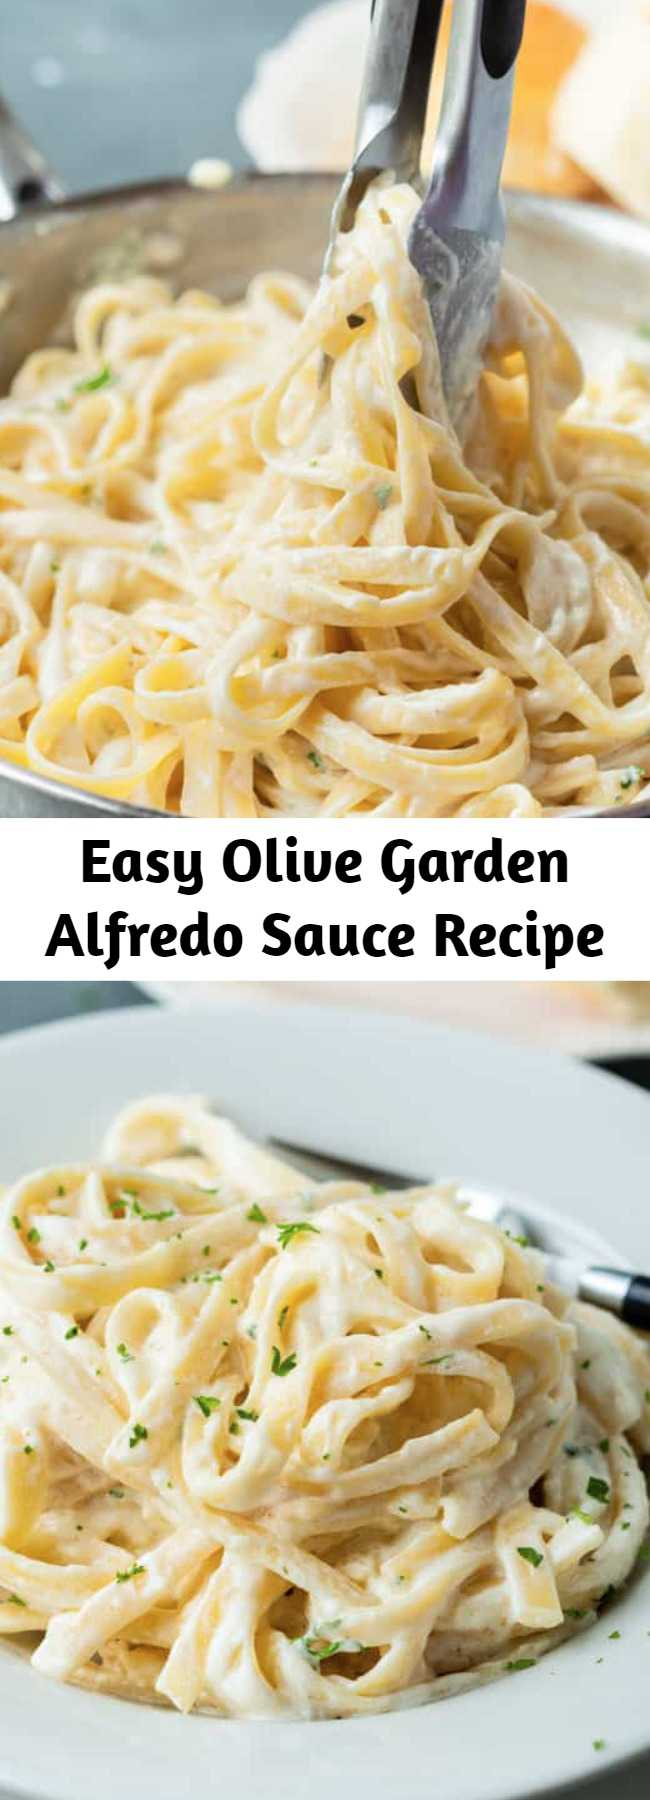 Easy Olive Garden Alfredo Sauce Recipe - Make Olive Garden's Alfredo Sauce Recipe at home in just 20 minutes! Pair it with Fettuccine for an easy dinner idea the whole family will love! #alfredo #olivegarden #fettuccine #pasta #italian #dinner